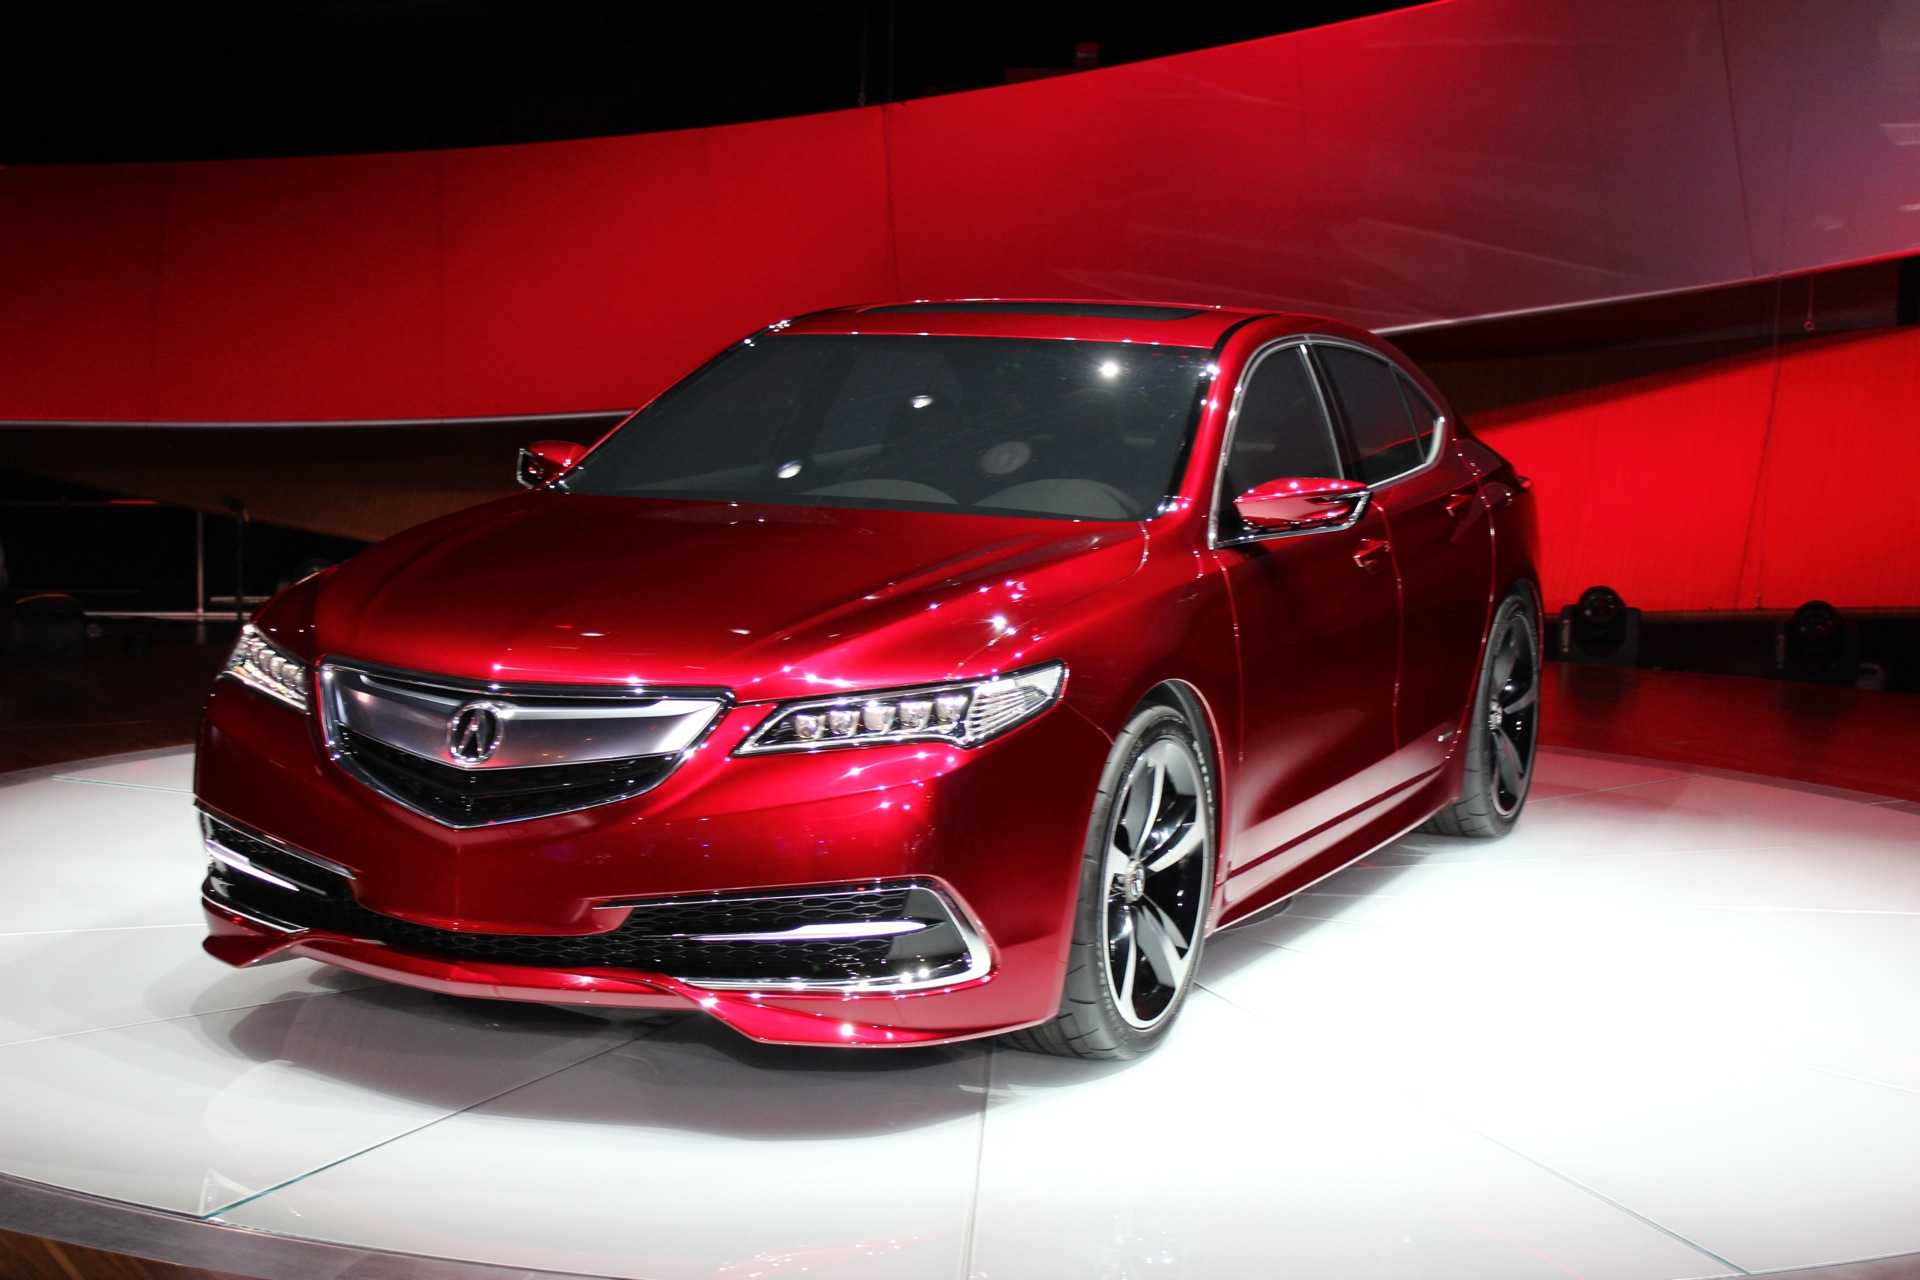 2015 Acura TLX Prototype: Full Details, Live Photos & Video